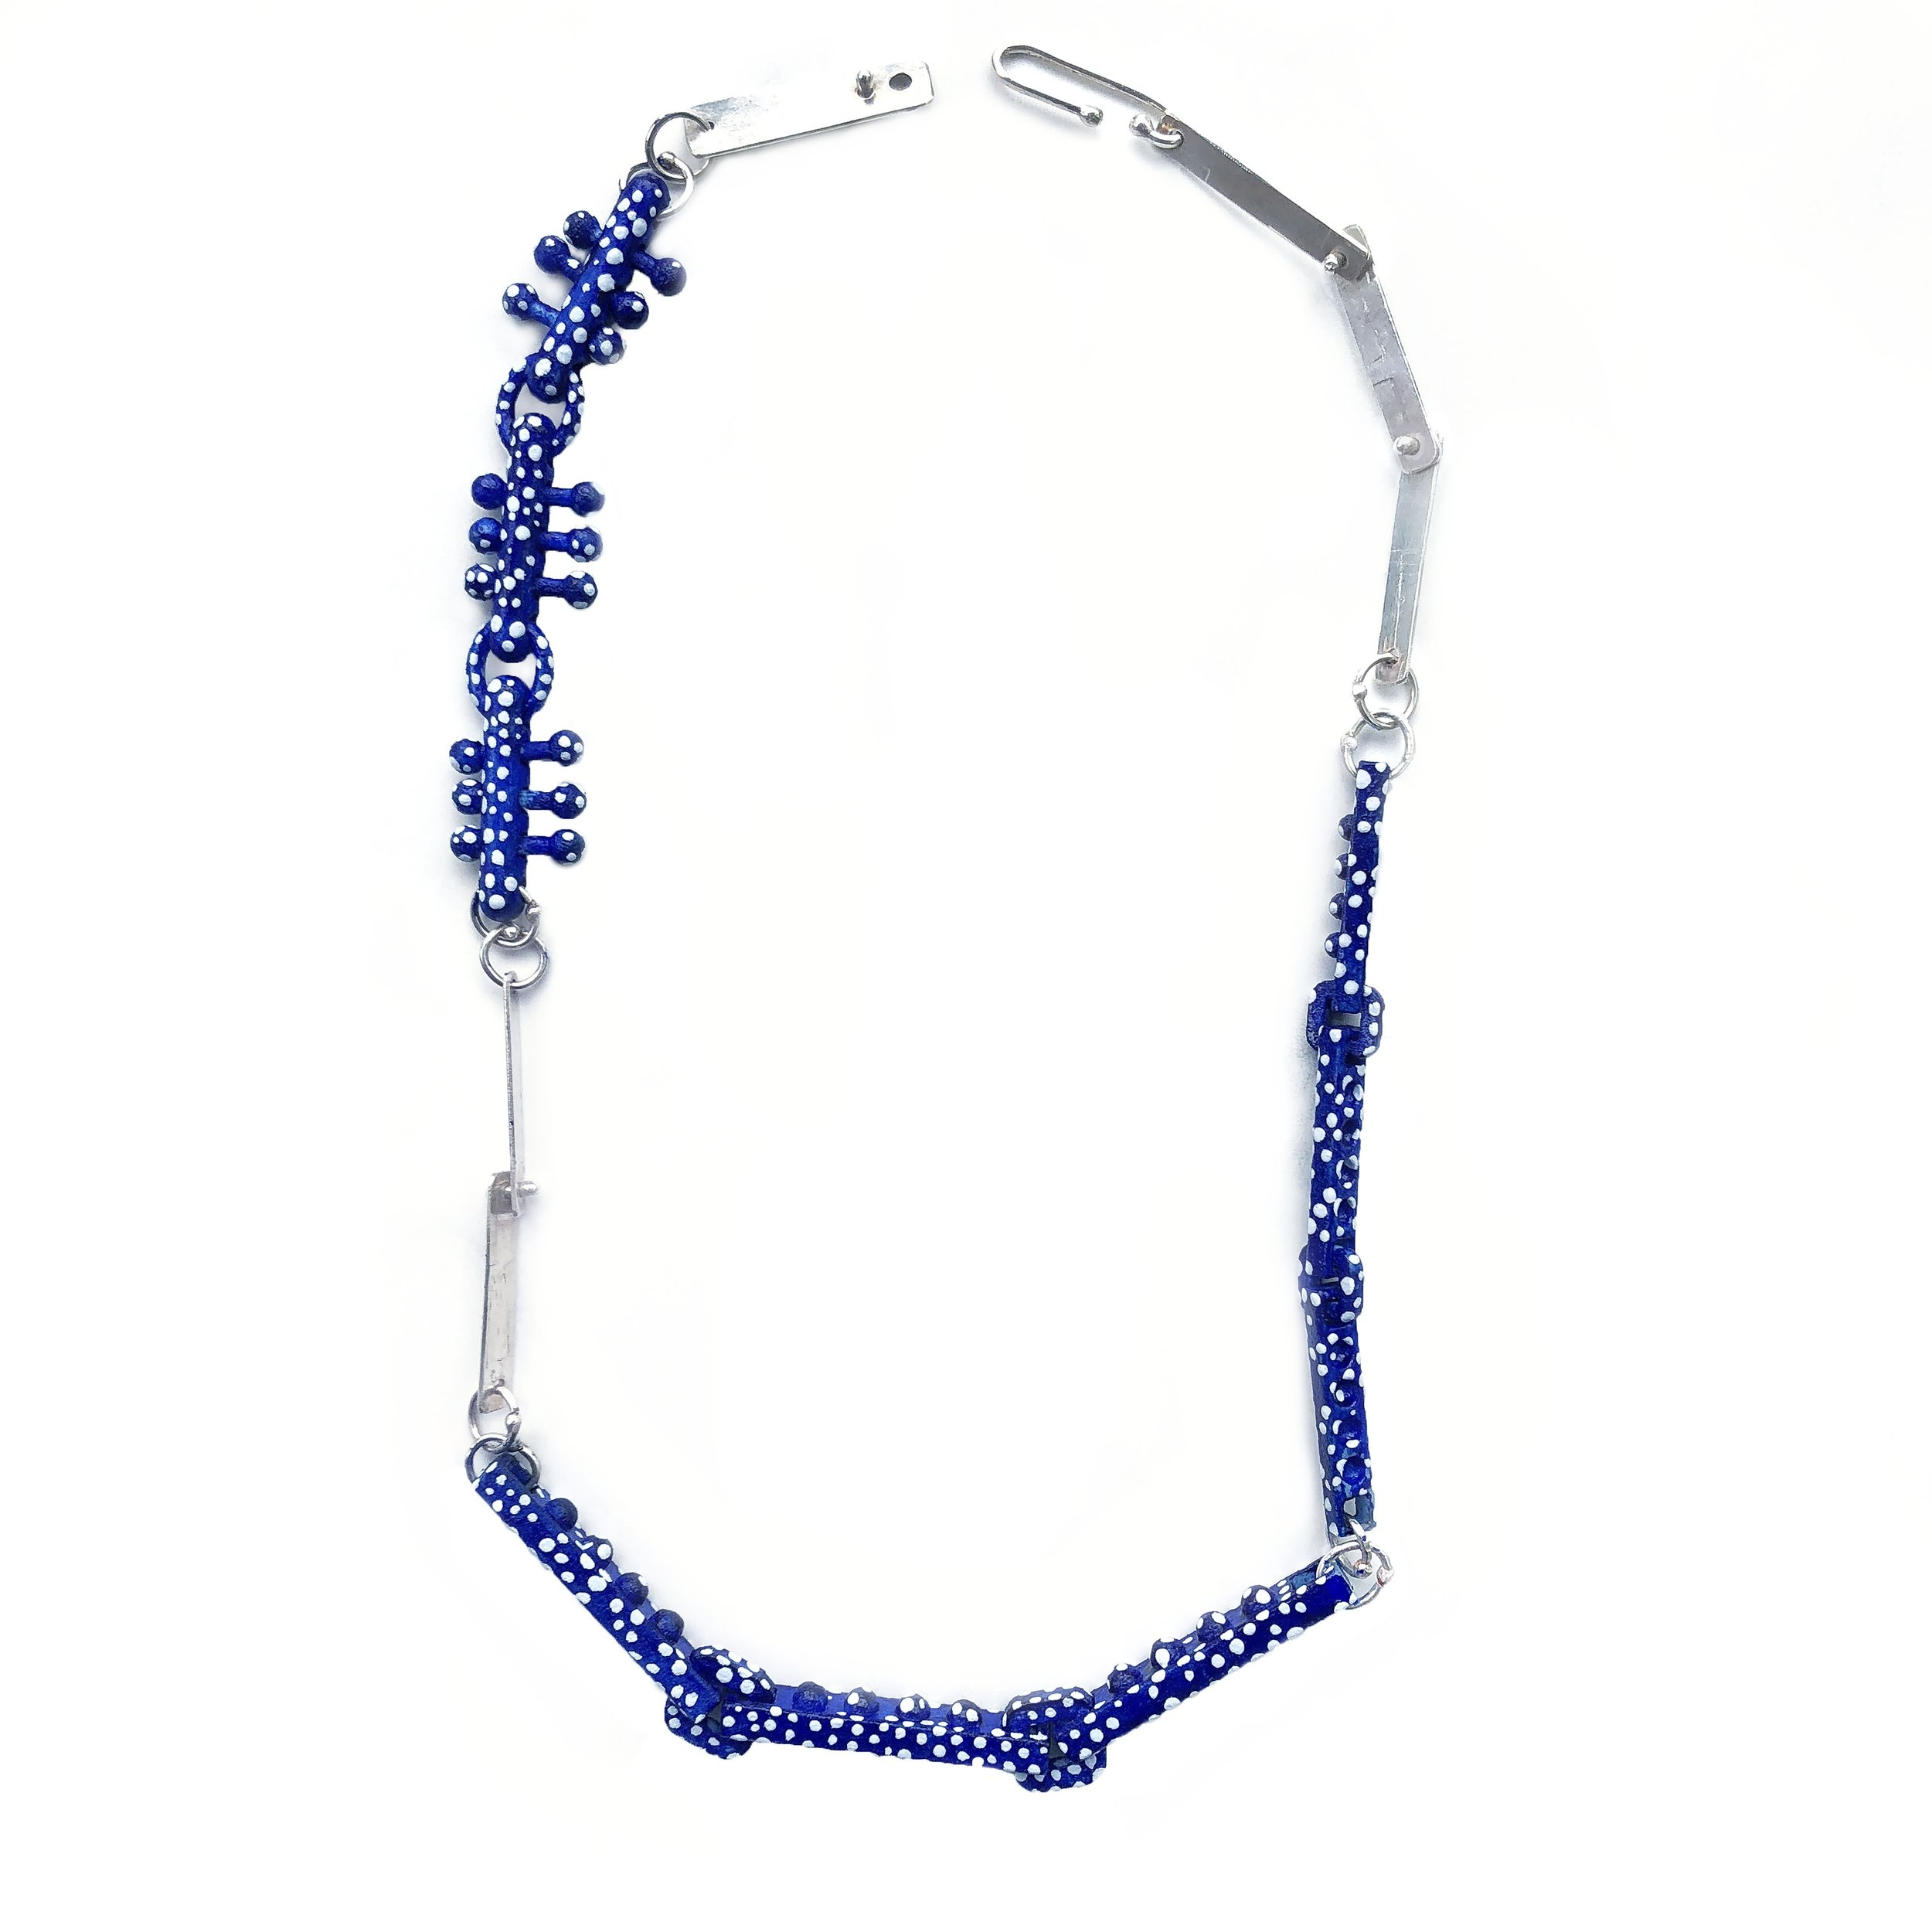 Rolling_Necklace_speckled_blue.jpg